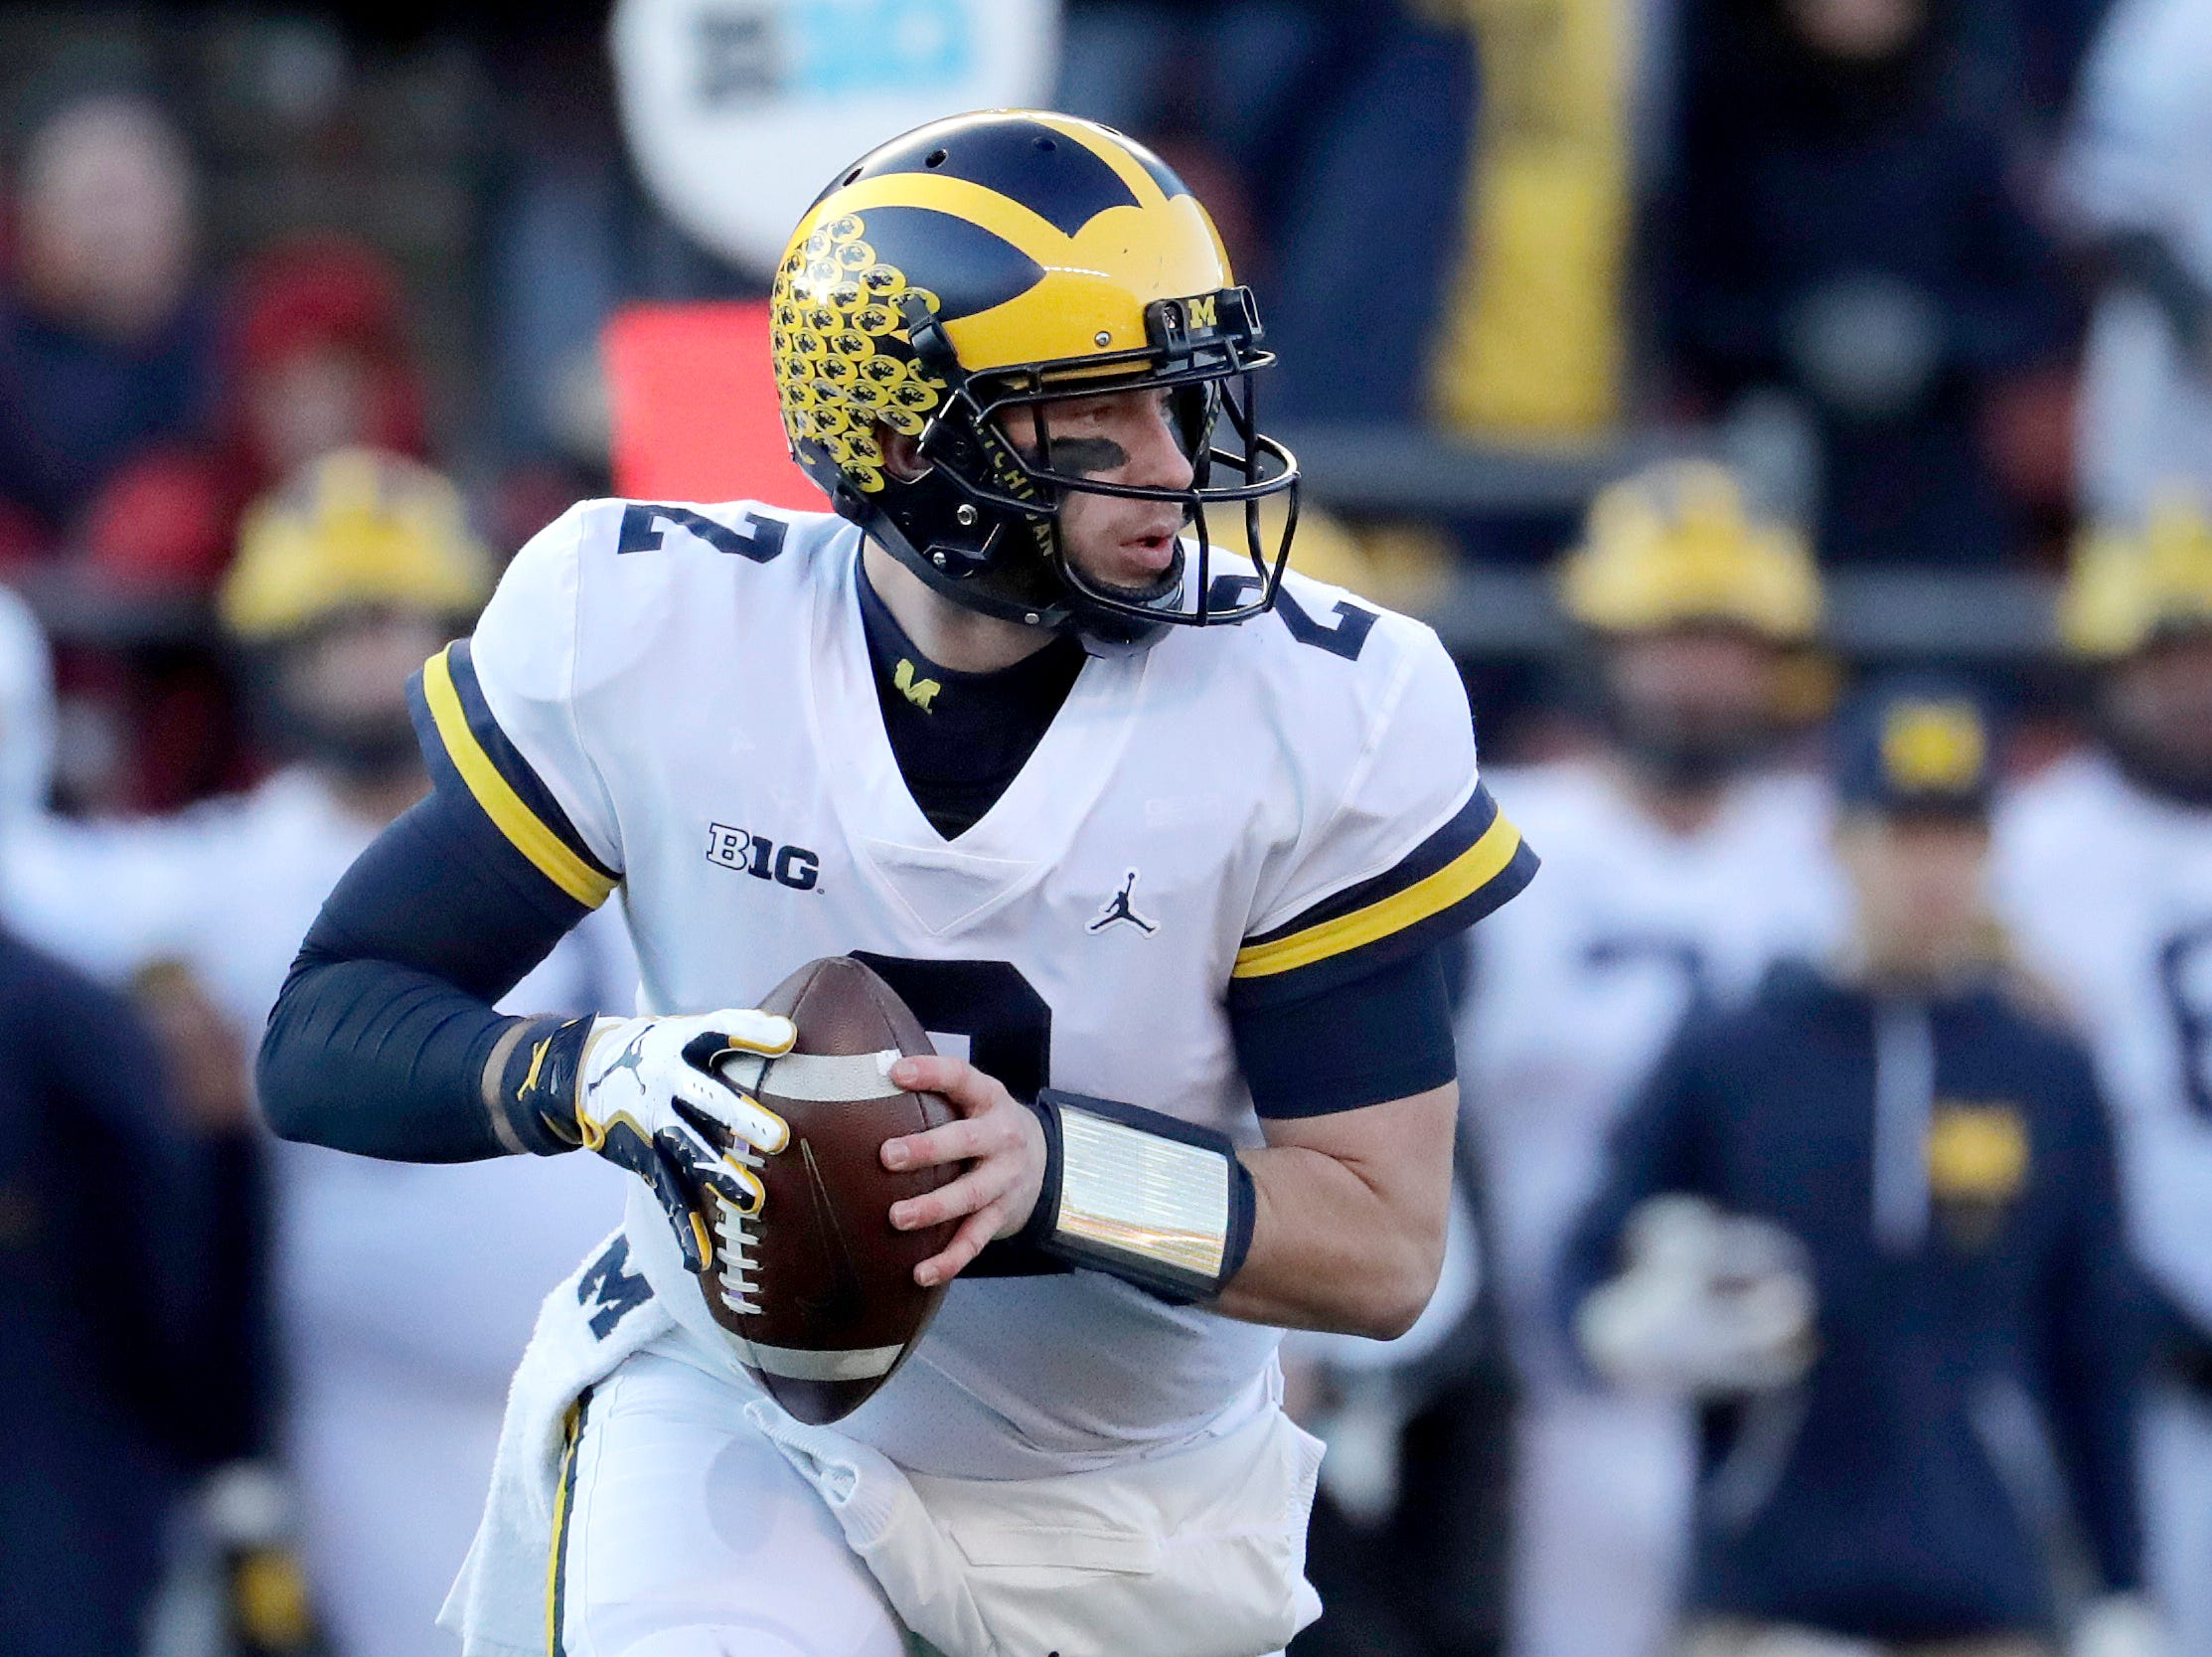 Michigan quarterback Shea Patterson looks to pass against Rutgers during the first half.